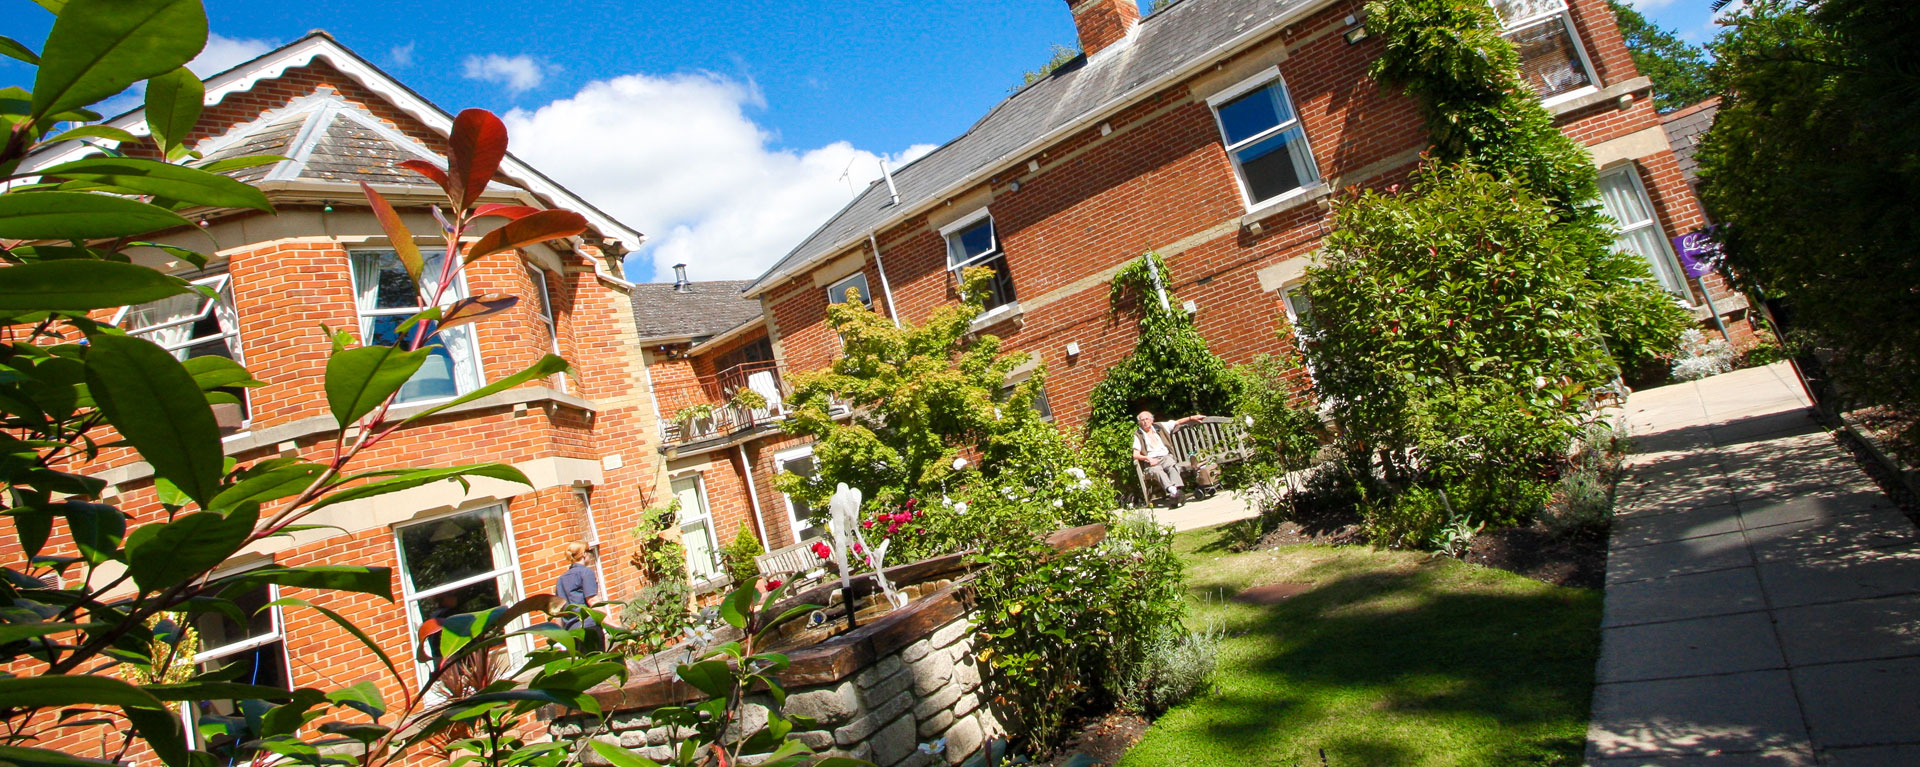 Laurel Care Home Gardens in the summer